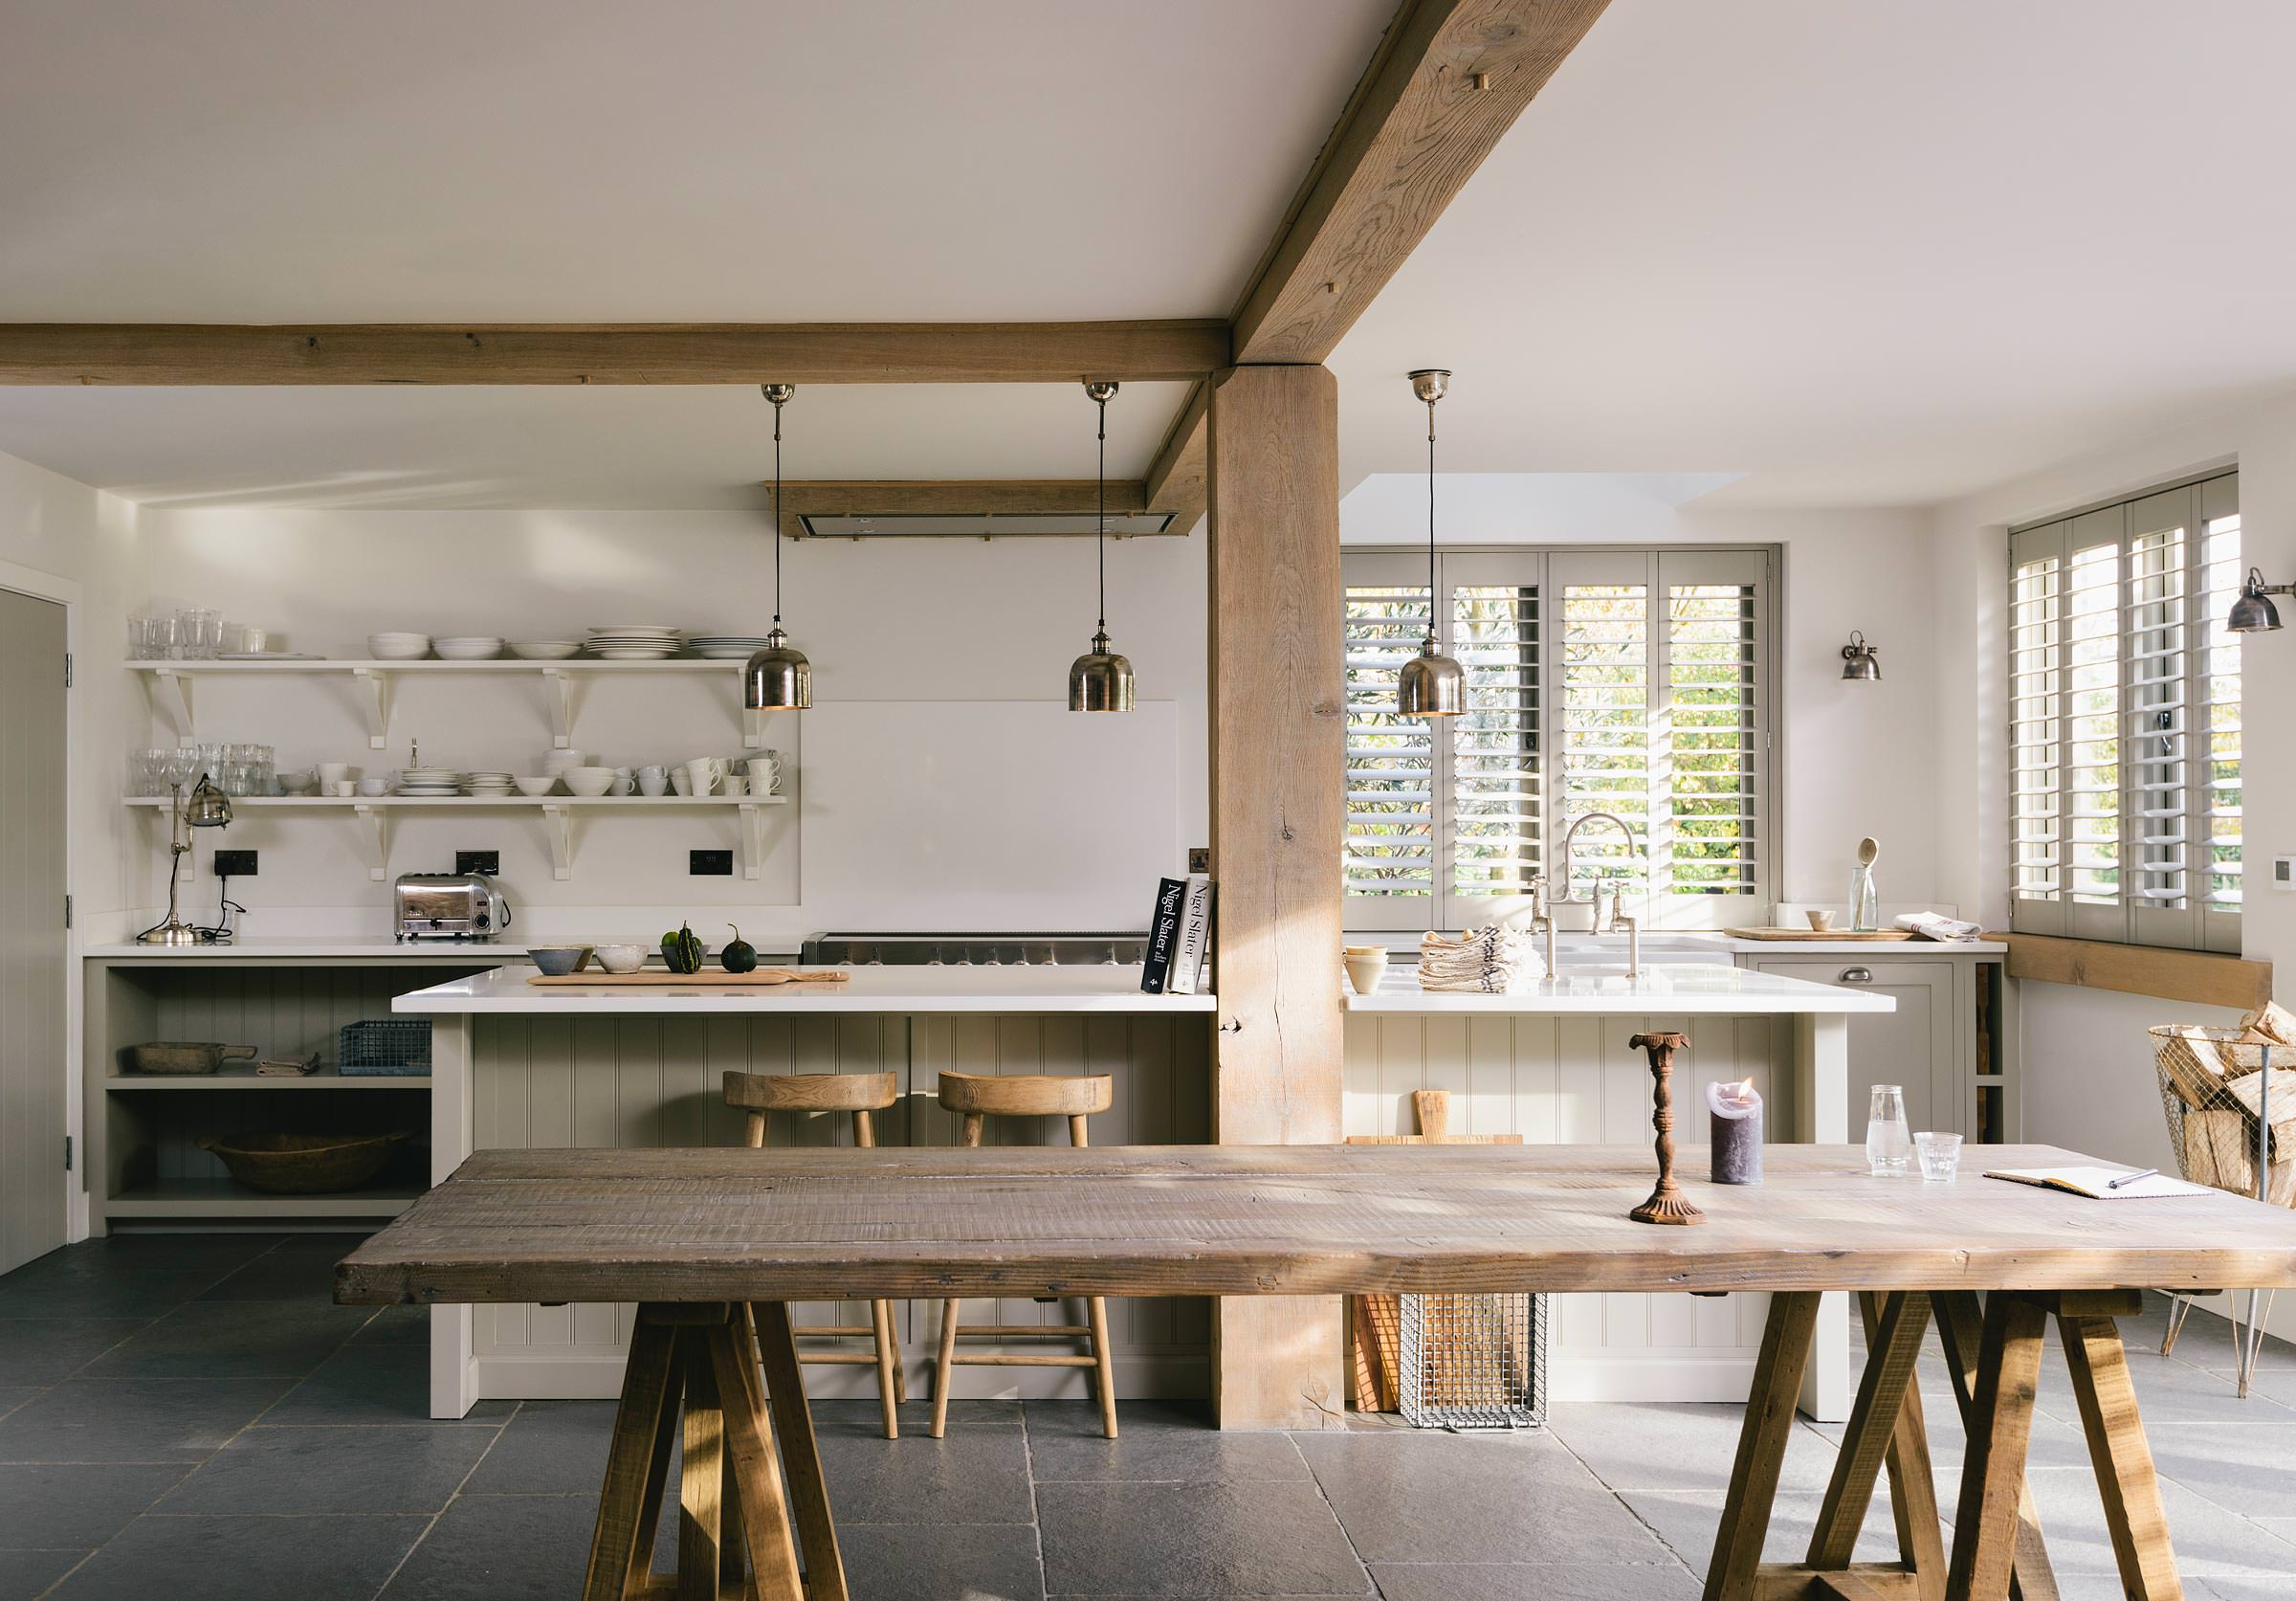 Our latest photoshoot… The Henley on Thames Kitchen